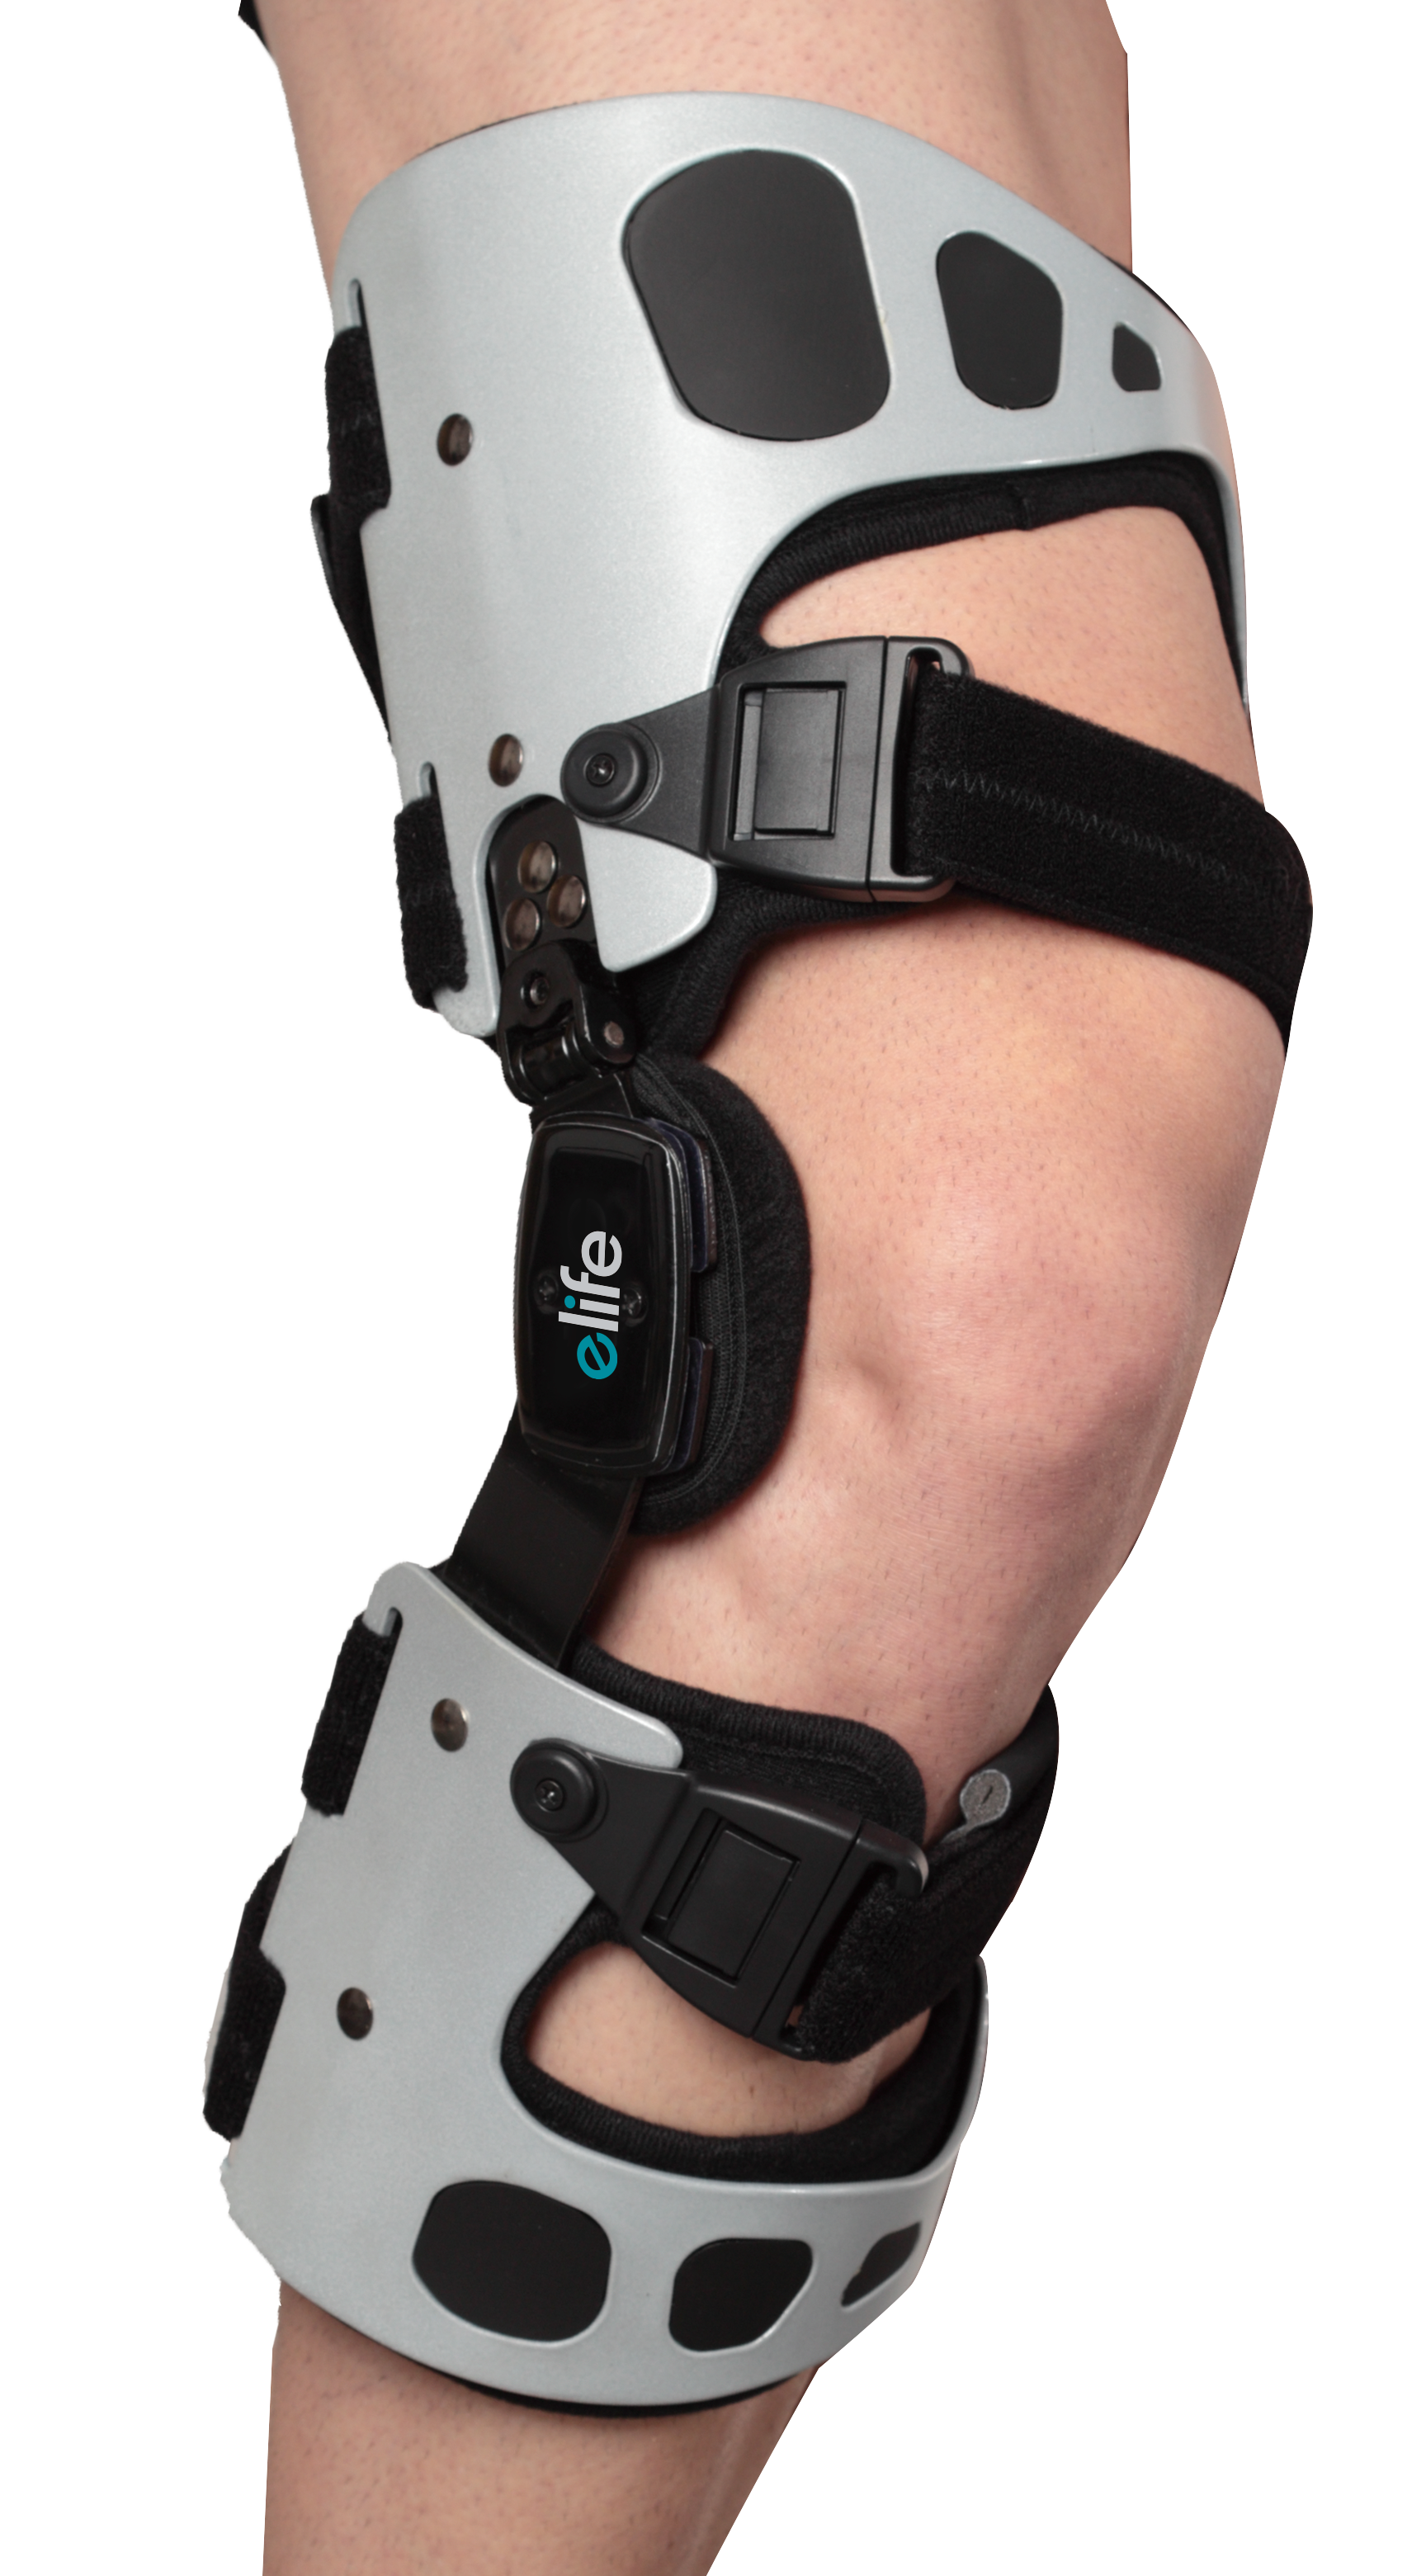 b1ca17d1cf elife Unlimit S2 OA Knee Brace | Orthopedic, Orthotic, Prosthetic e ...